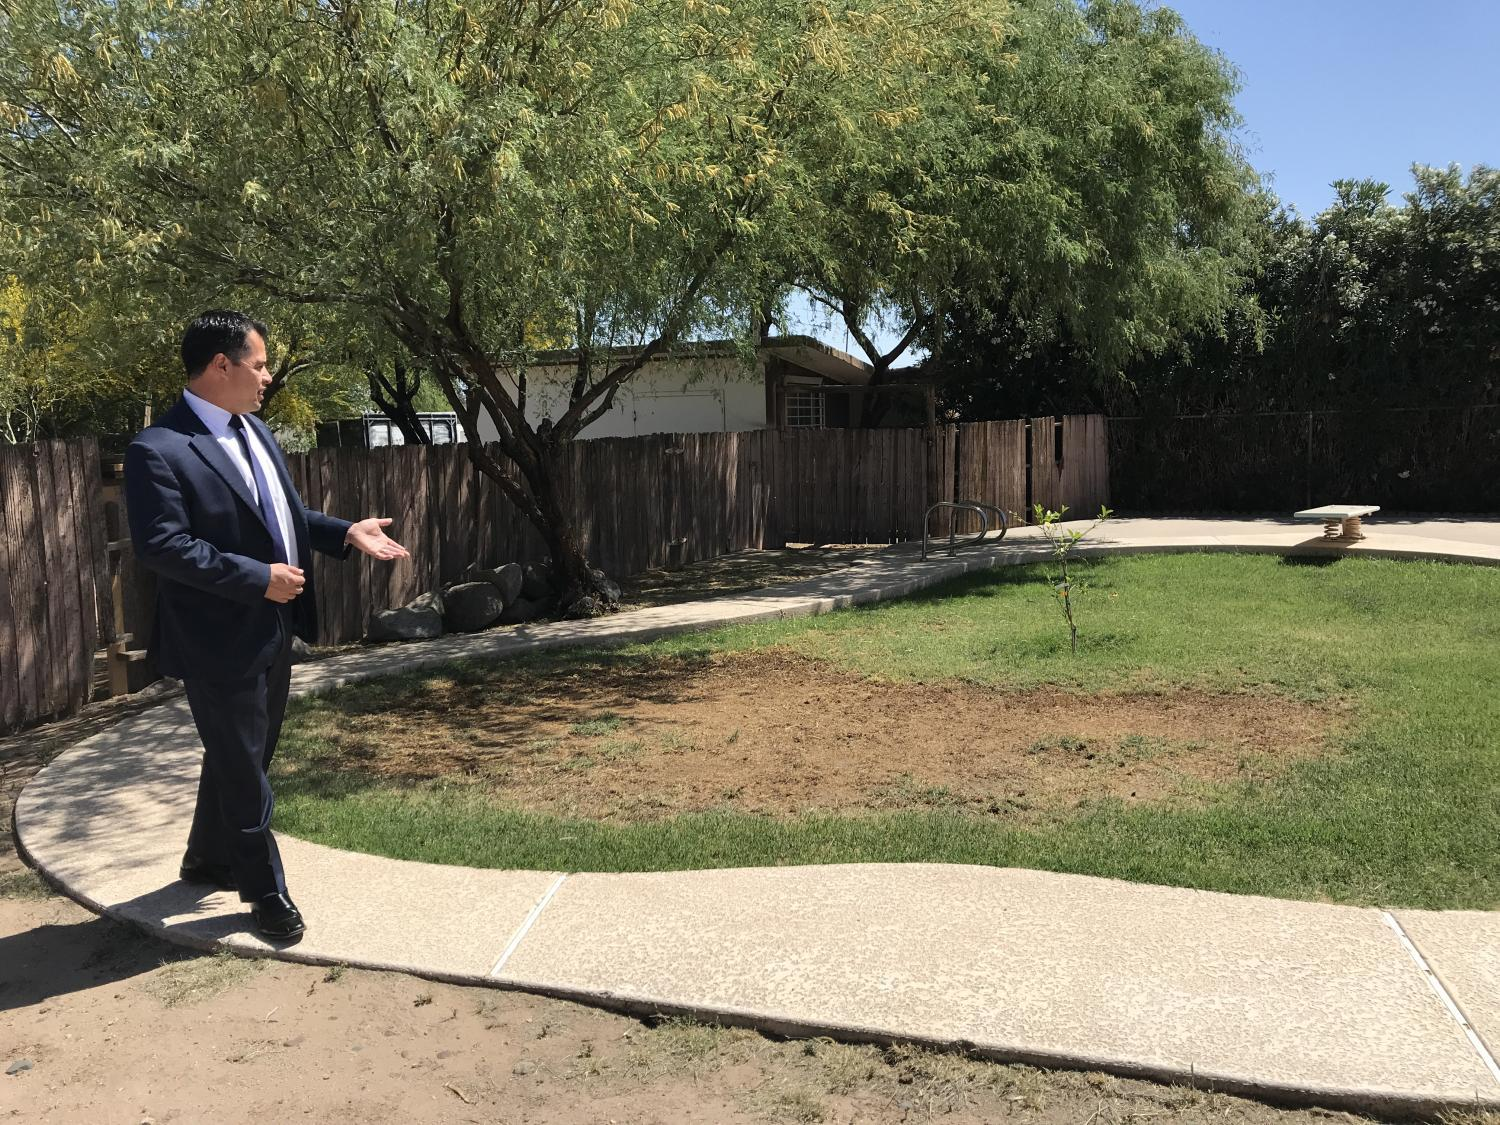 Vidales shows horse property with filled in pool